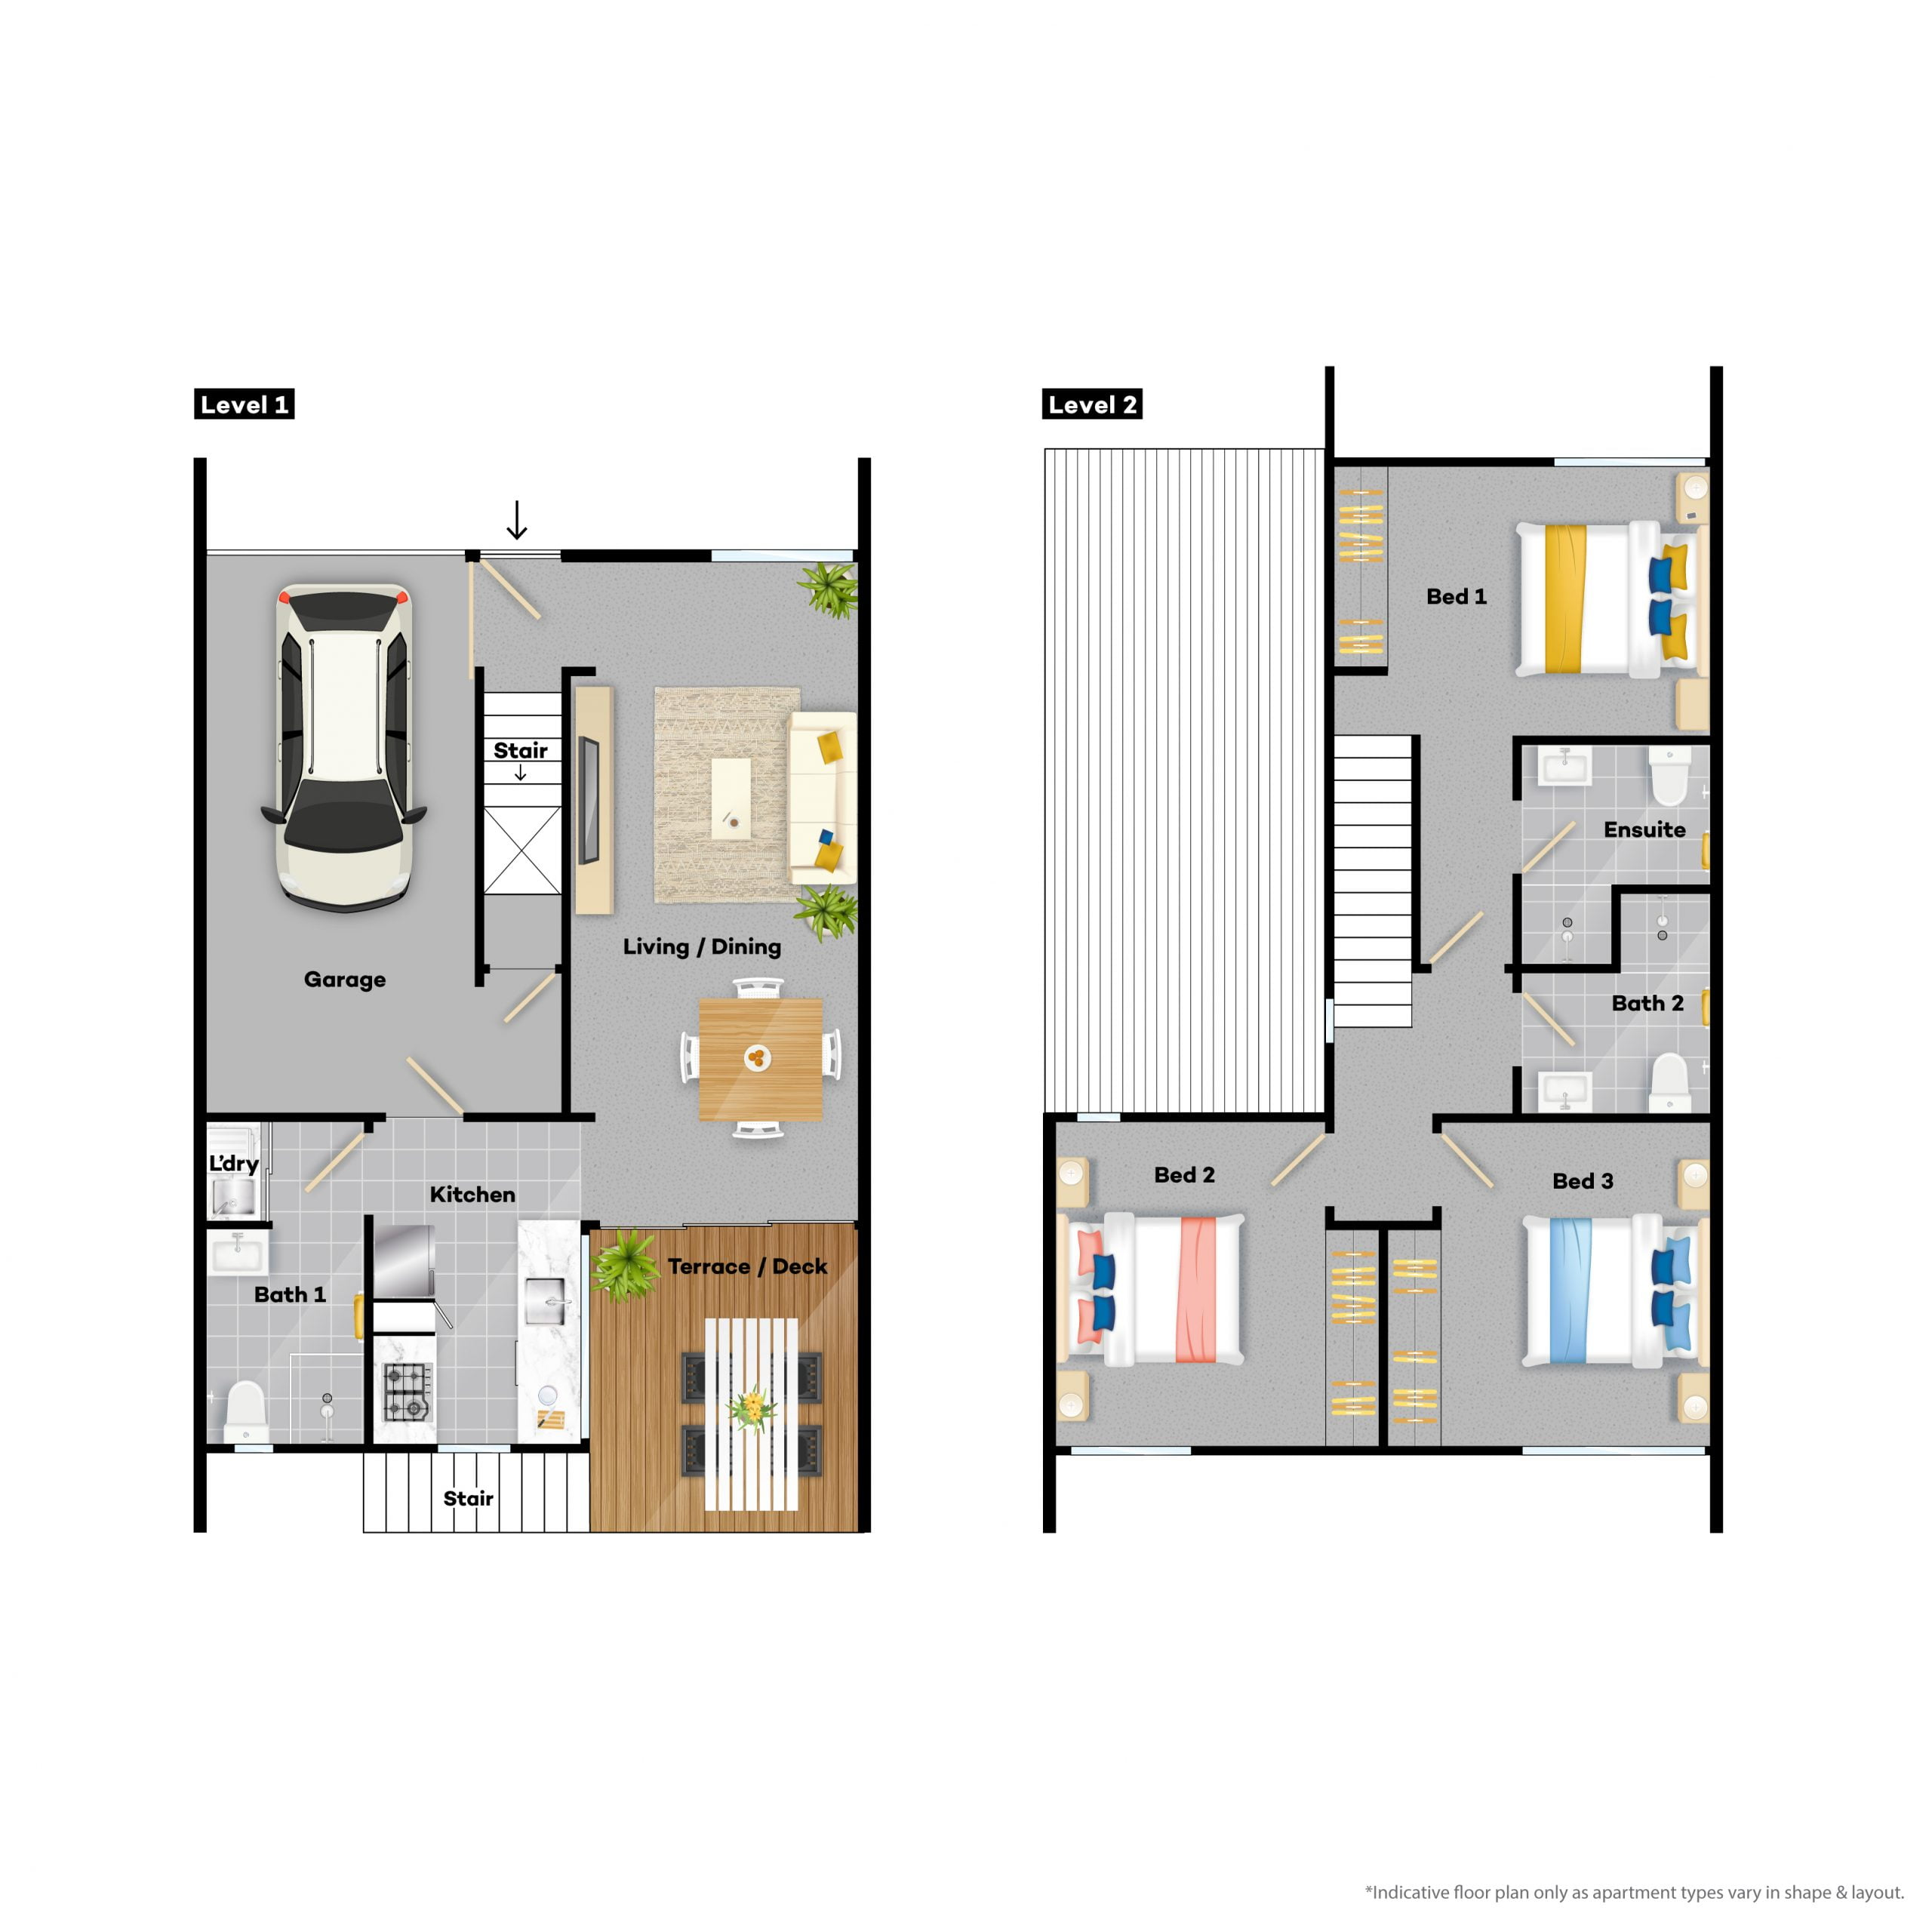 3 bedroom apartments for rent Floor plan